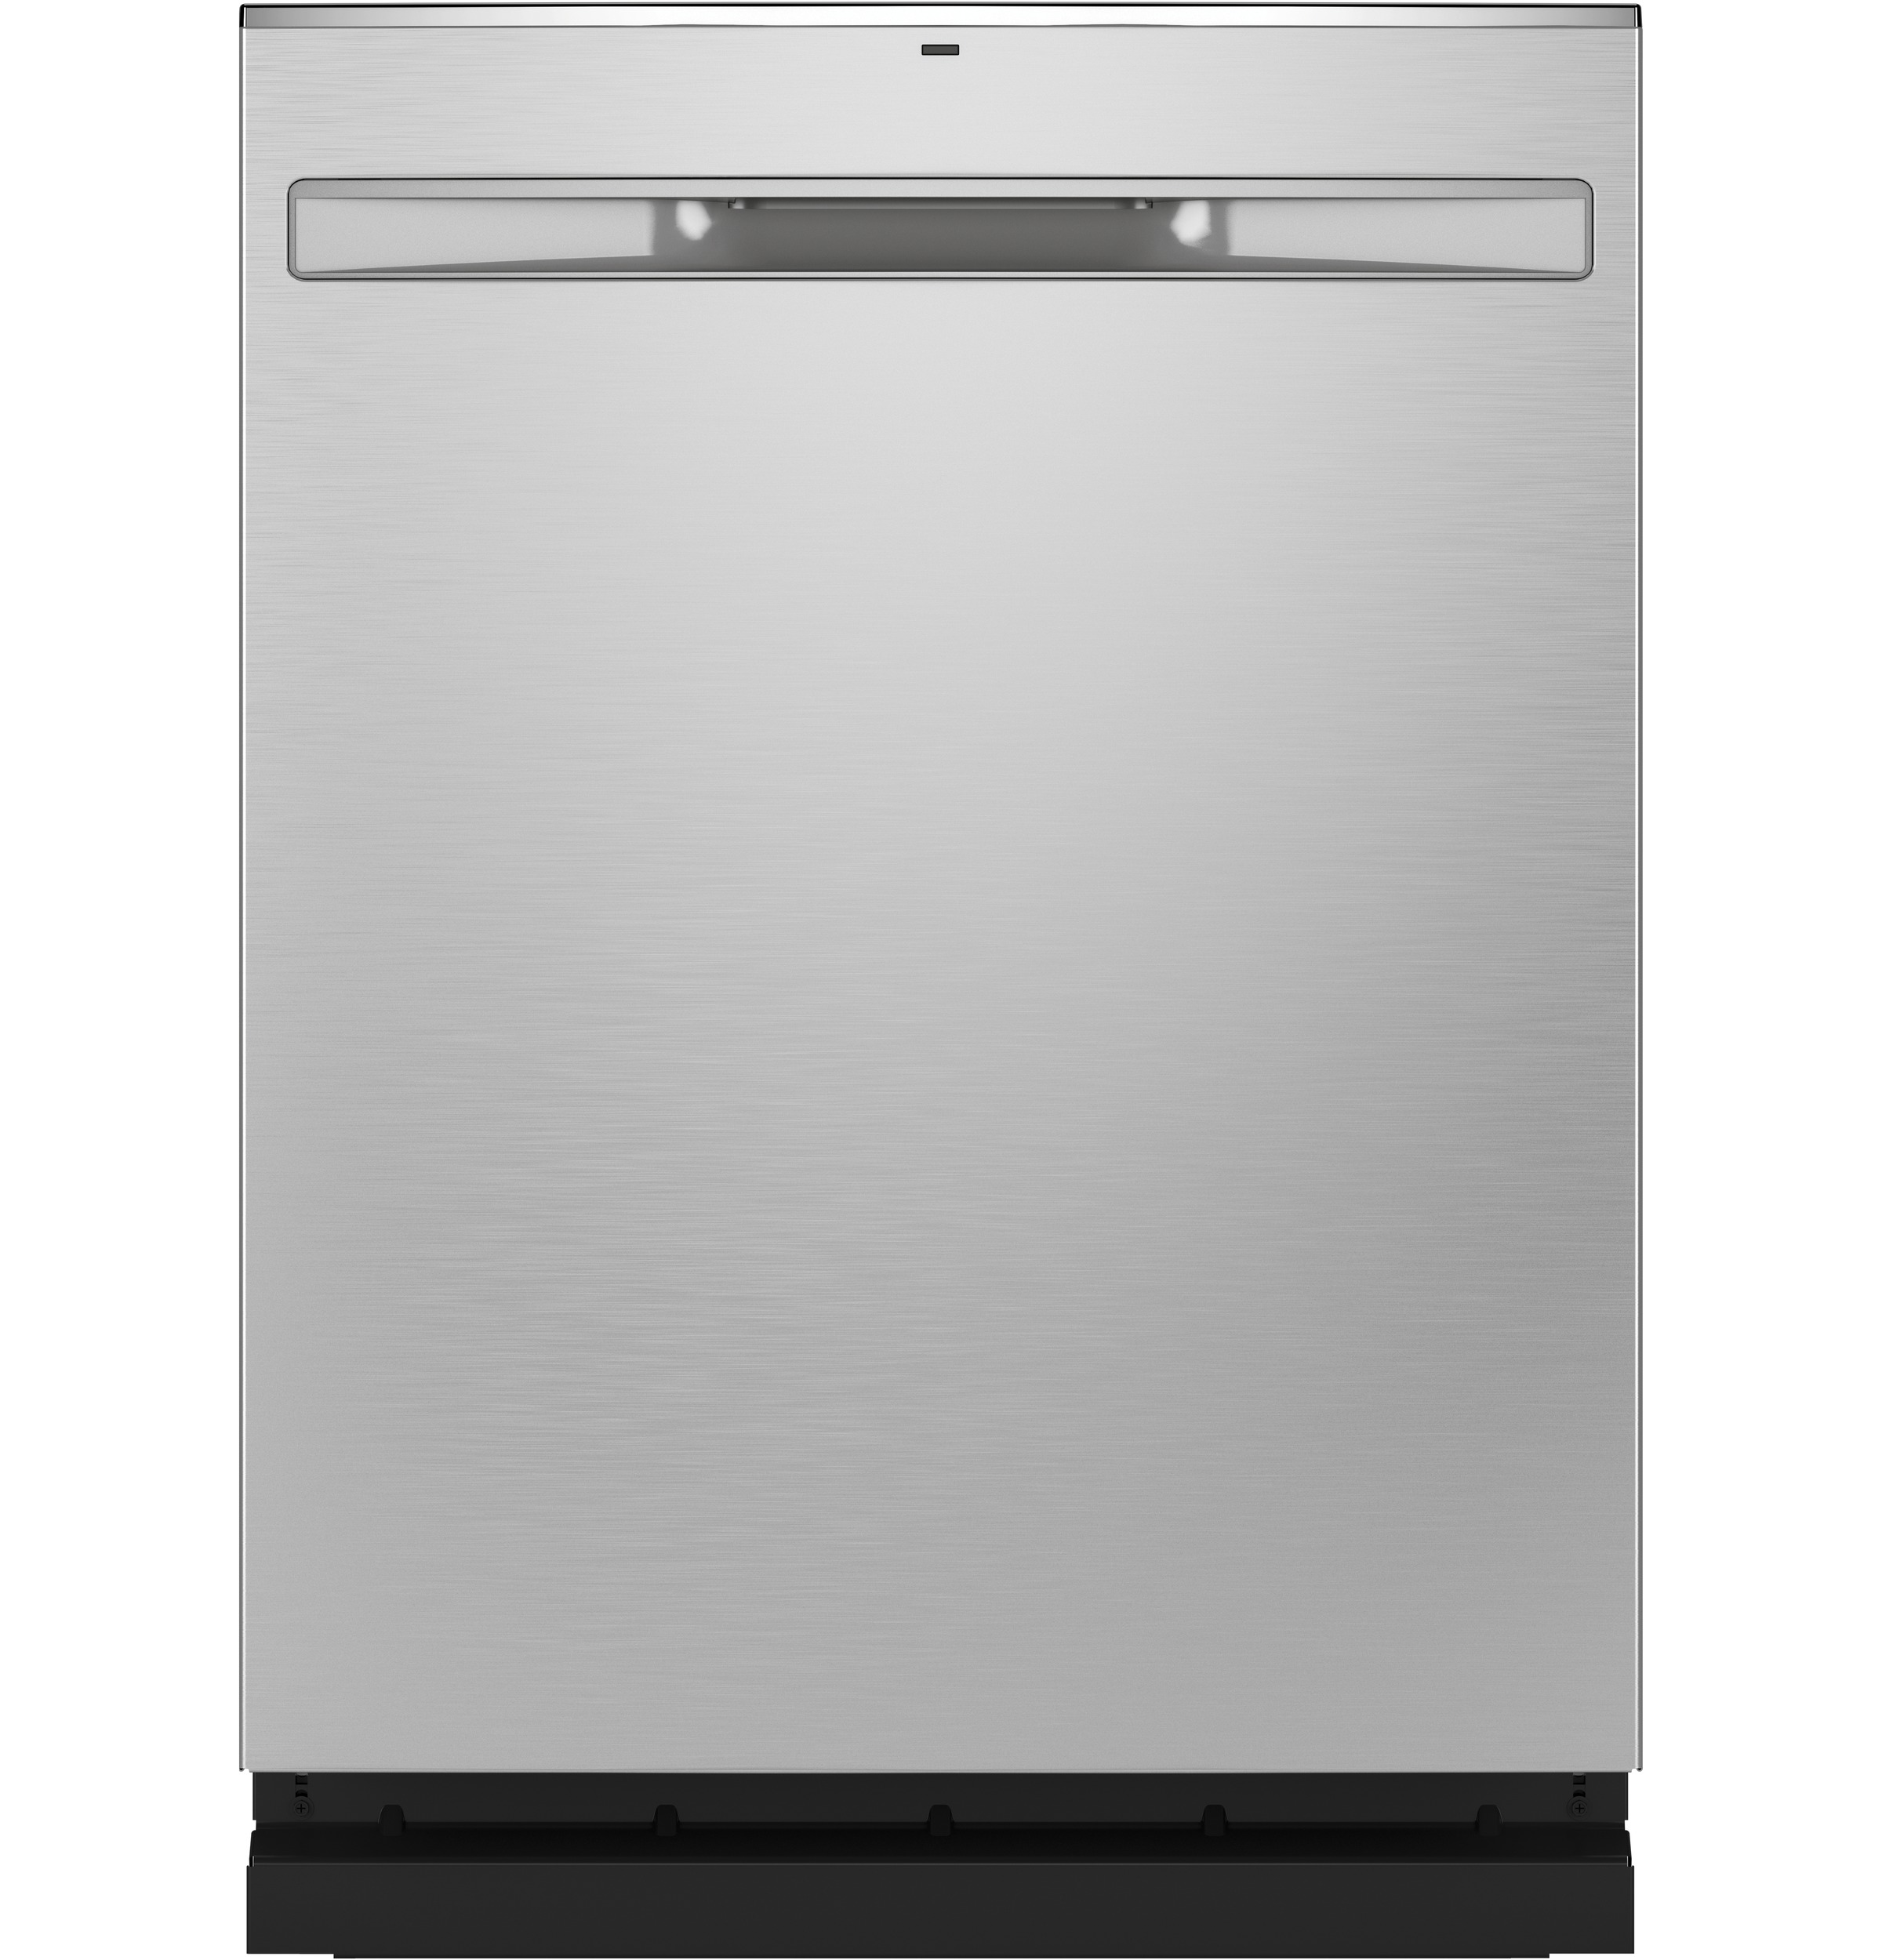 GE GE® Stainless Steel Interior Fingerprint Resistant Dishwasher with Hidden Controls